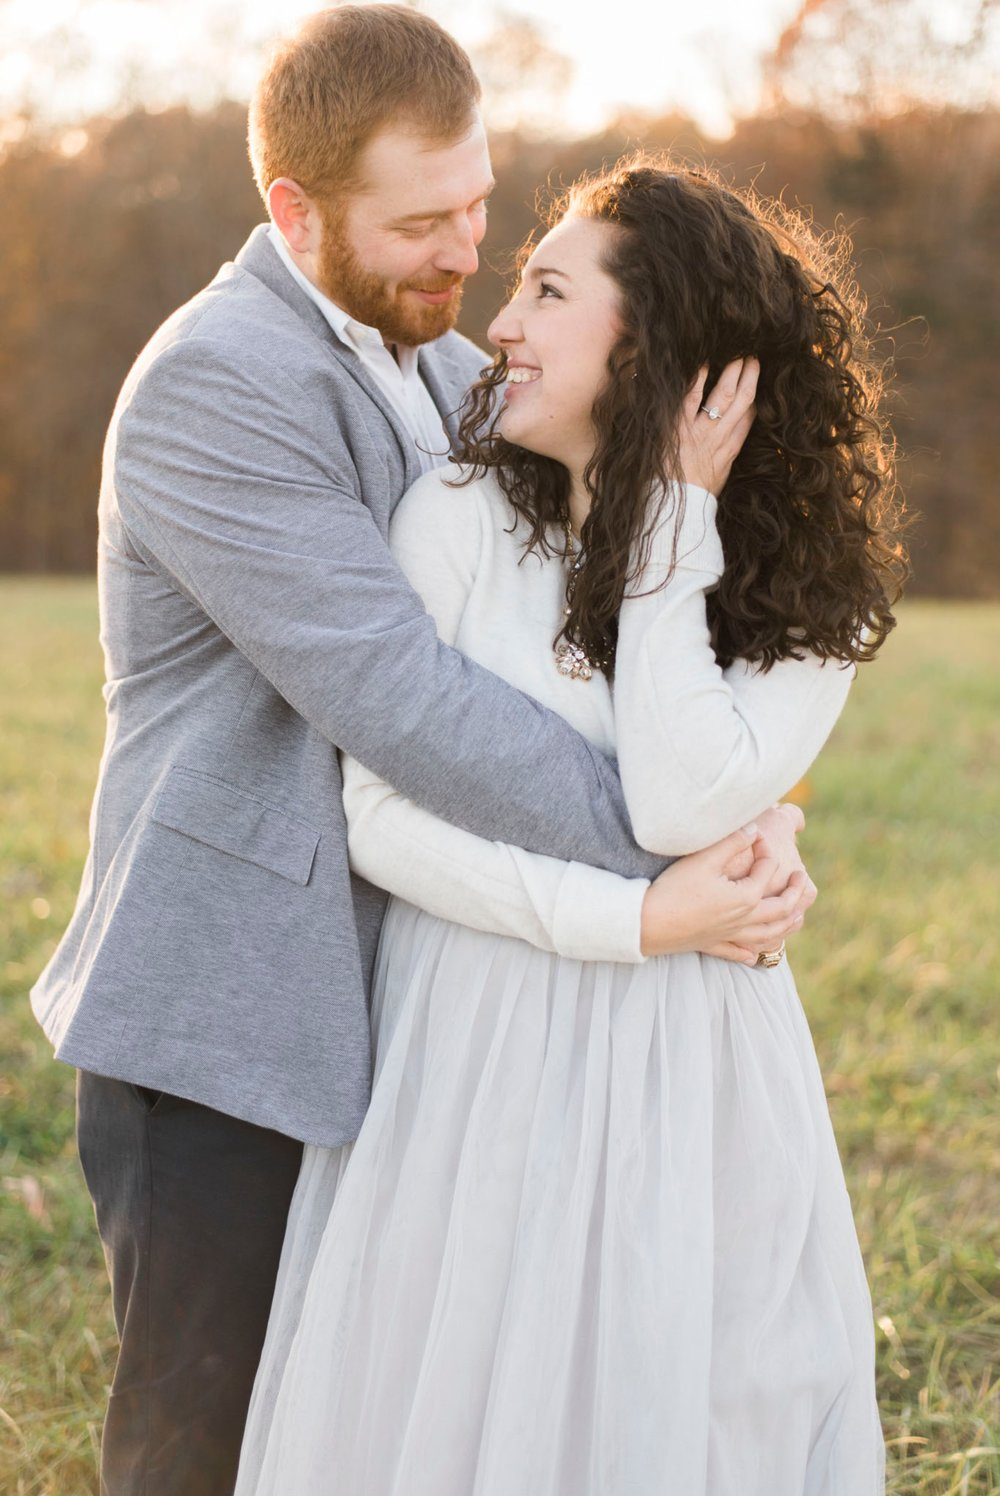 SorellaFarms_EngagementSession_VirginiaweddingPhotographer 61.jpg